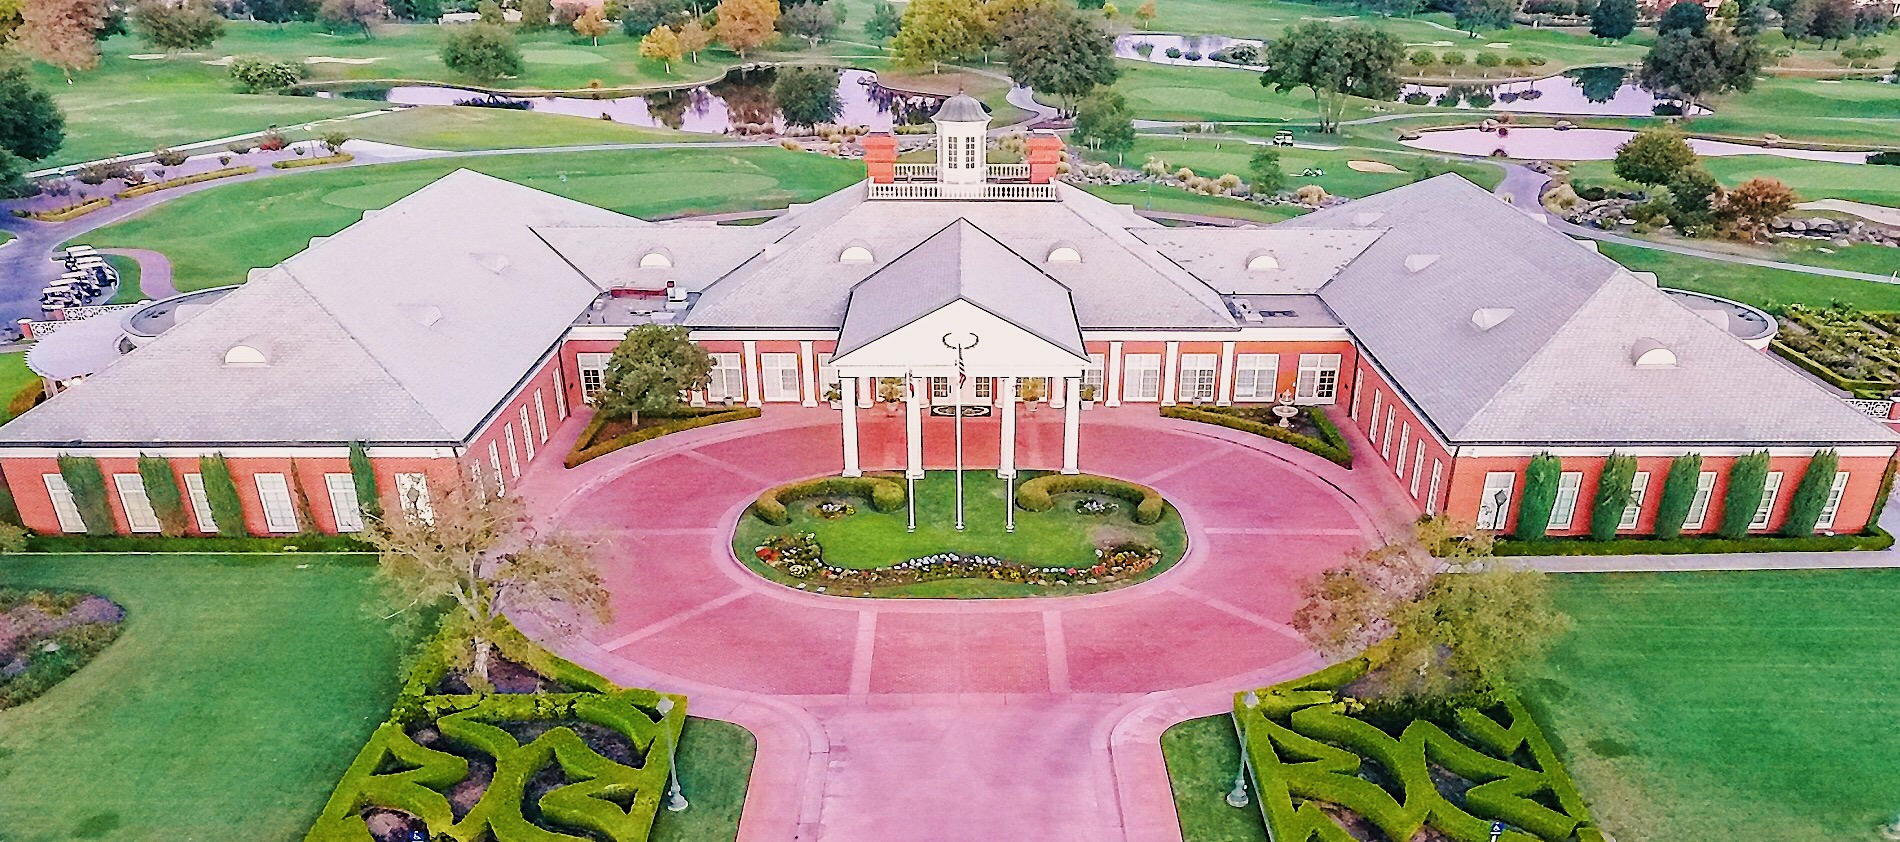 Seven Oaks Country Club (Photo taken from official website)